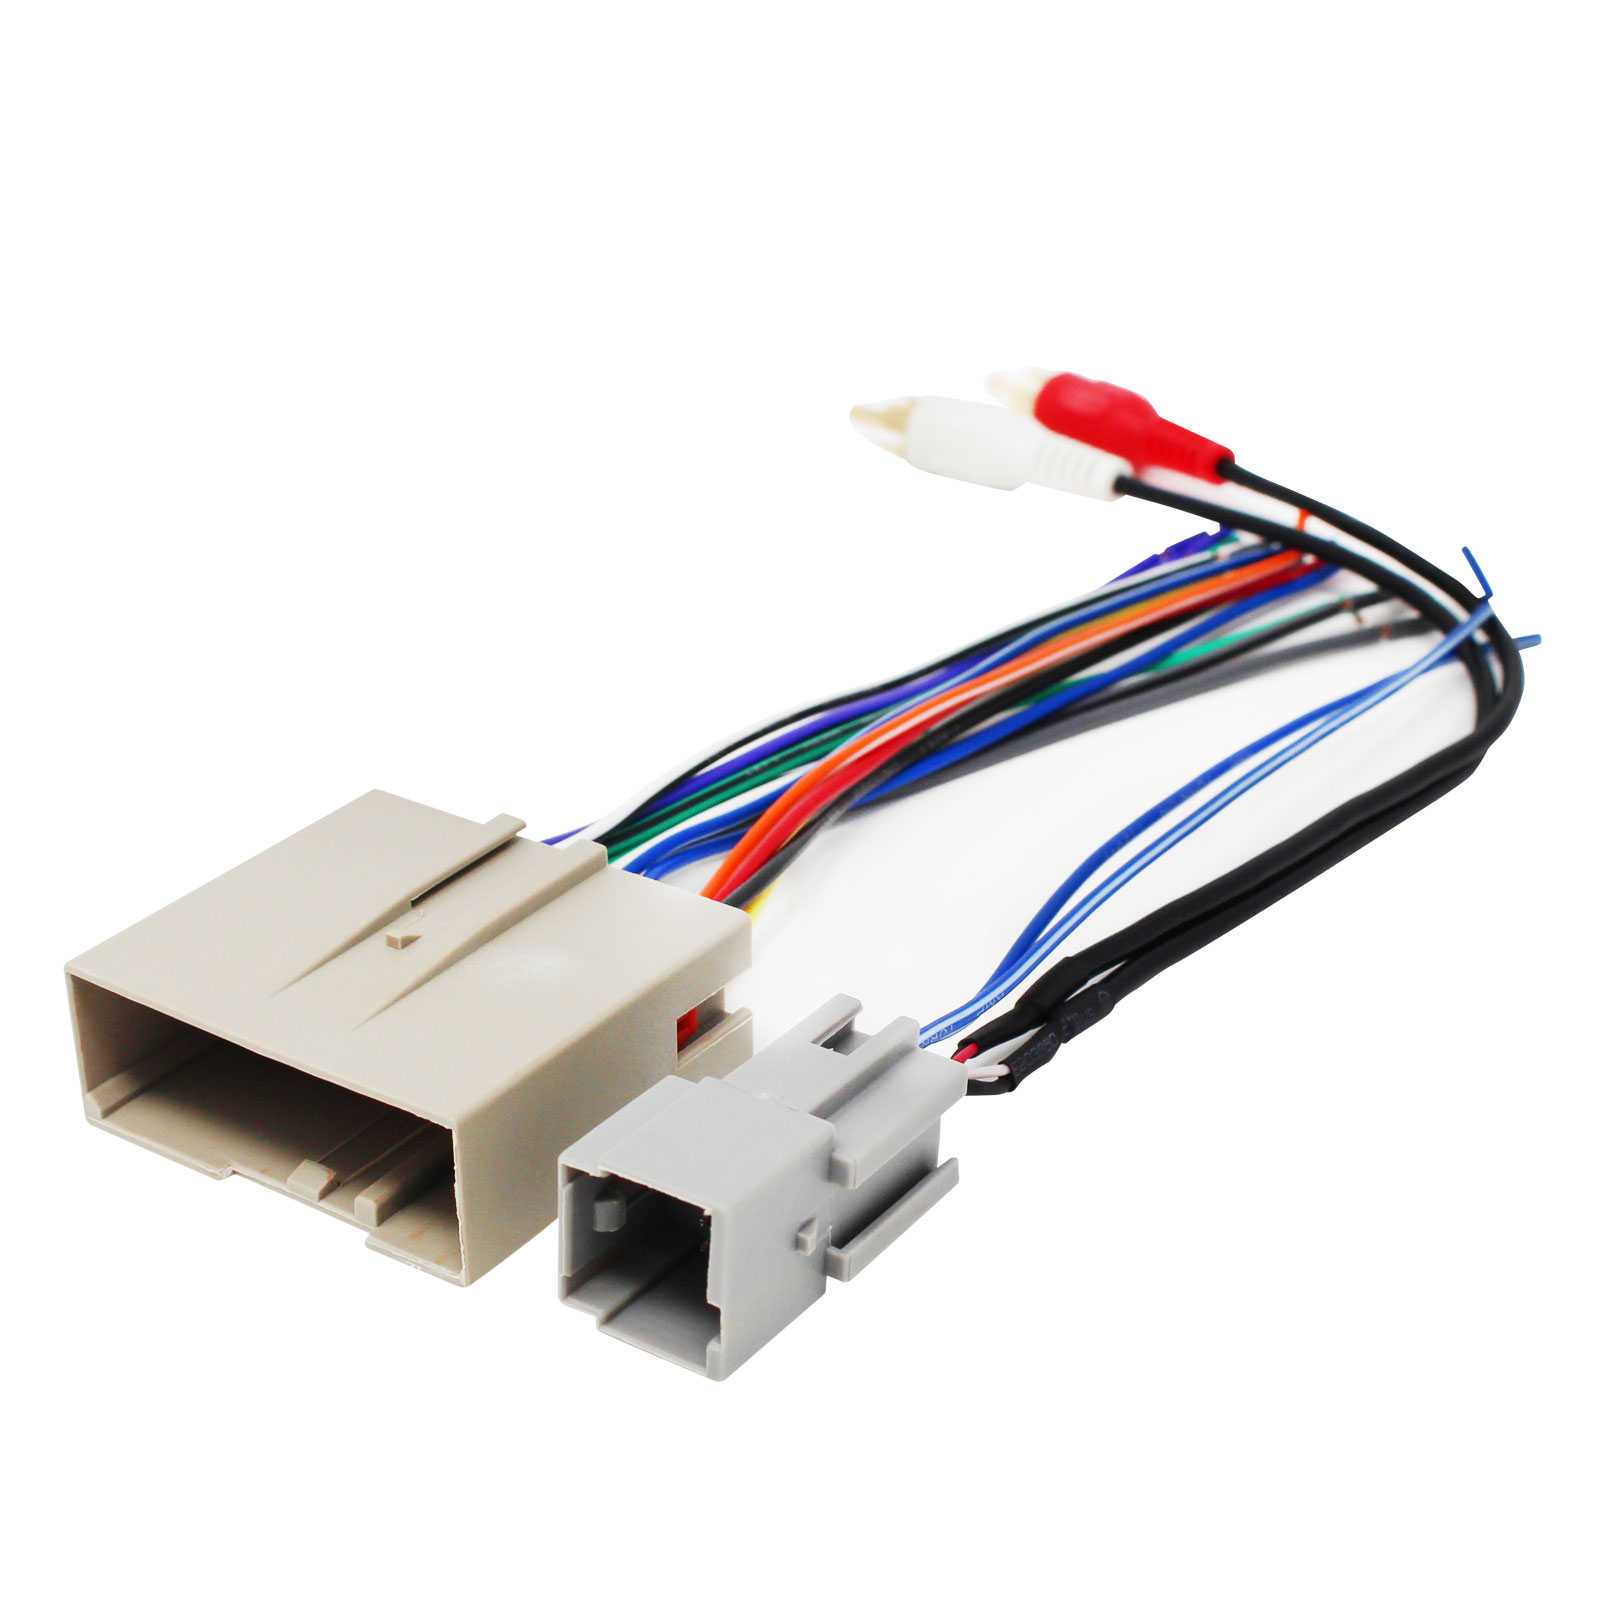 replacement radio wiring harness for 2005 ford f 250 super duty xl 2014 Ford 250 Crew Cab  2014 Ford Super Duty Crown Victoria Wiring Harness 2003 Ford F 250 XL Diesel